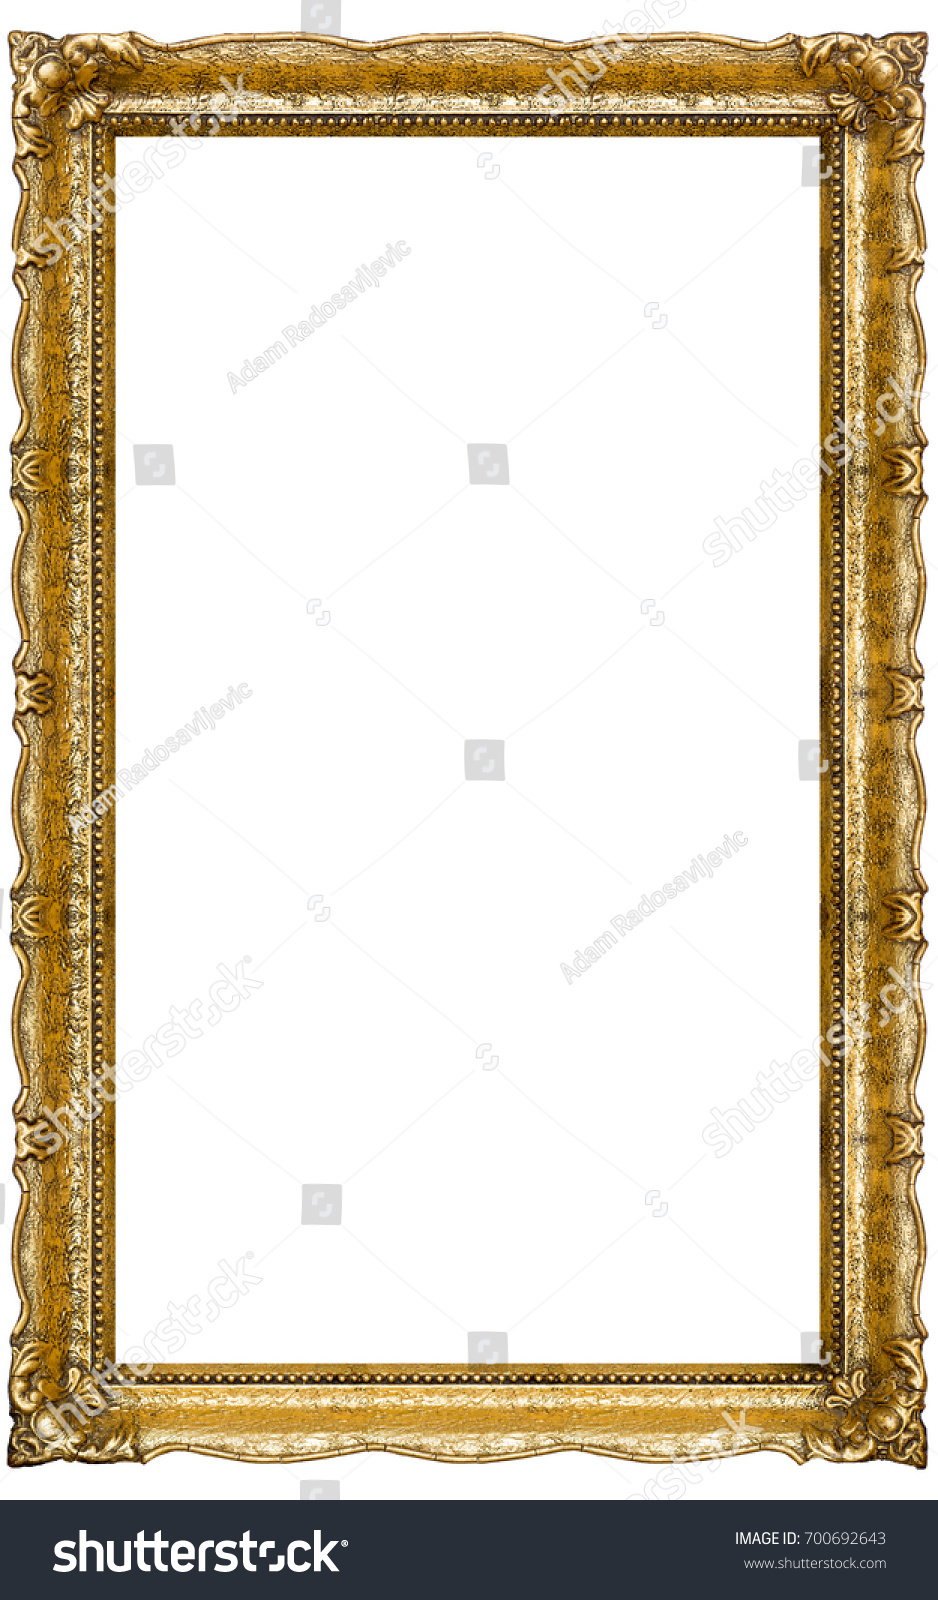 Very Big Old Gold Picture Frame Stock Photo (Edit Now)- Shutterstock